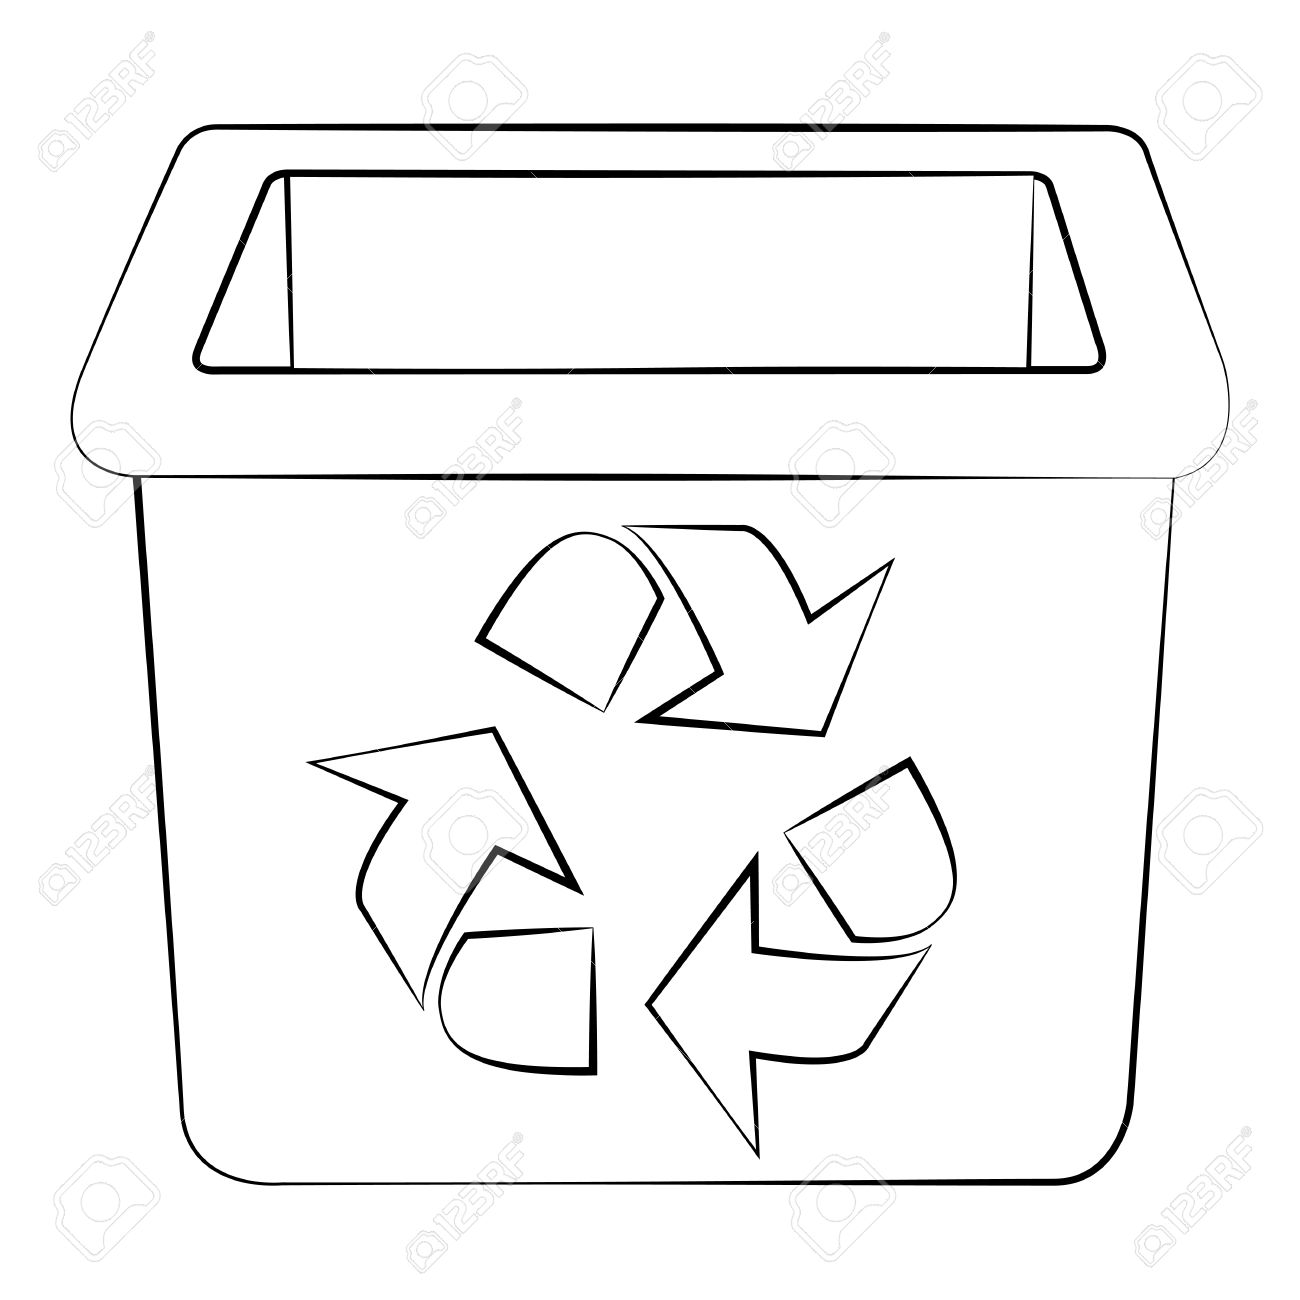 Outline Of Garbage Can Or Recycle Bin On White Background. Royalty.